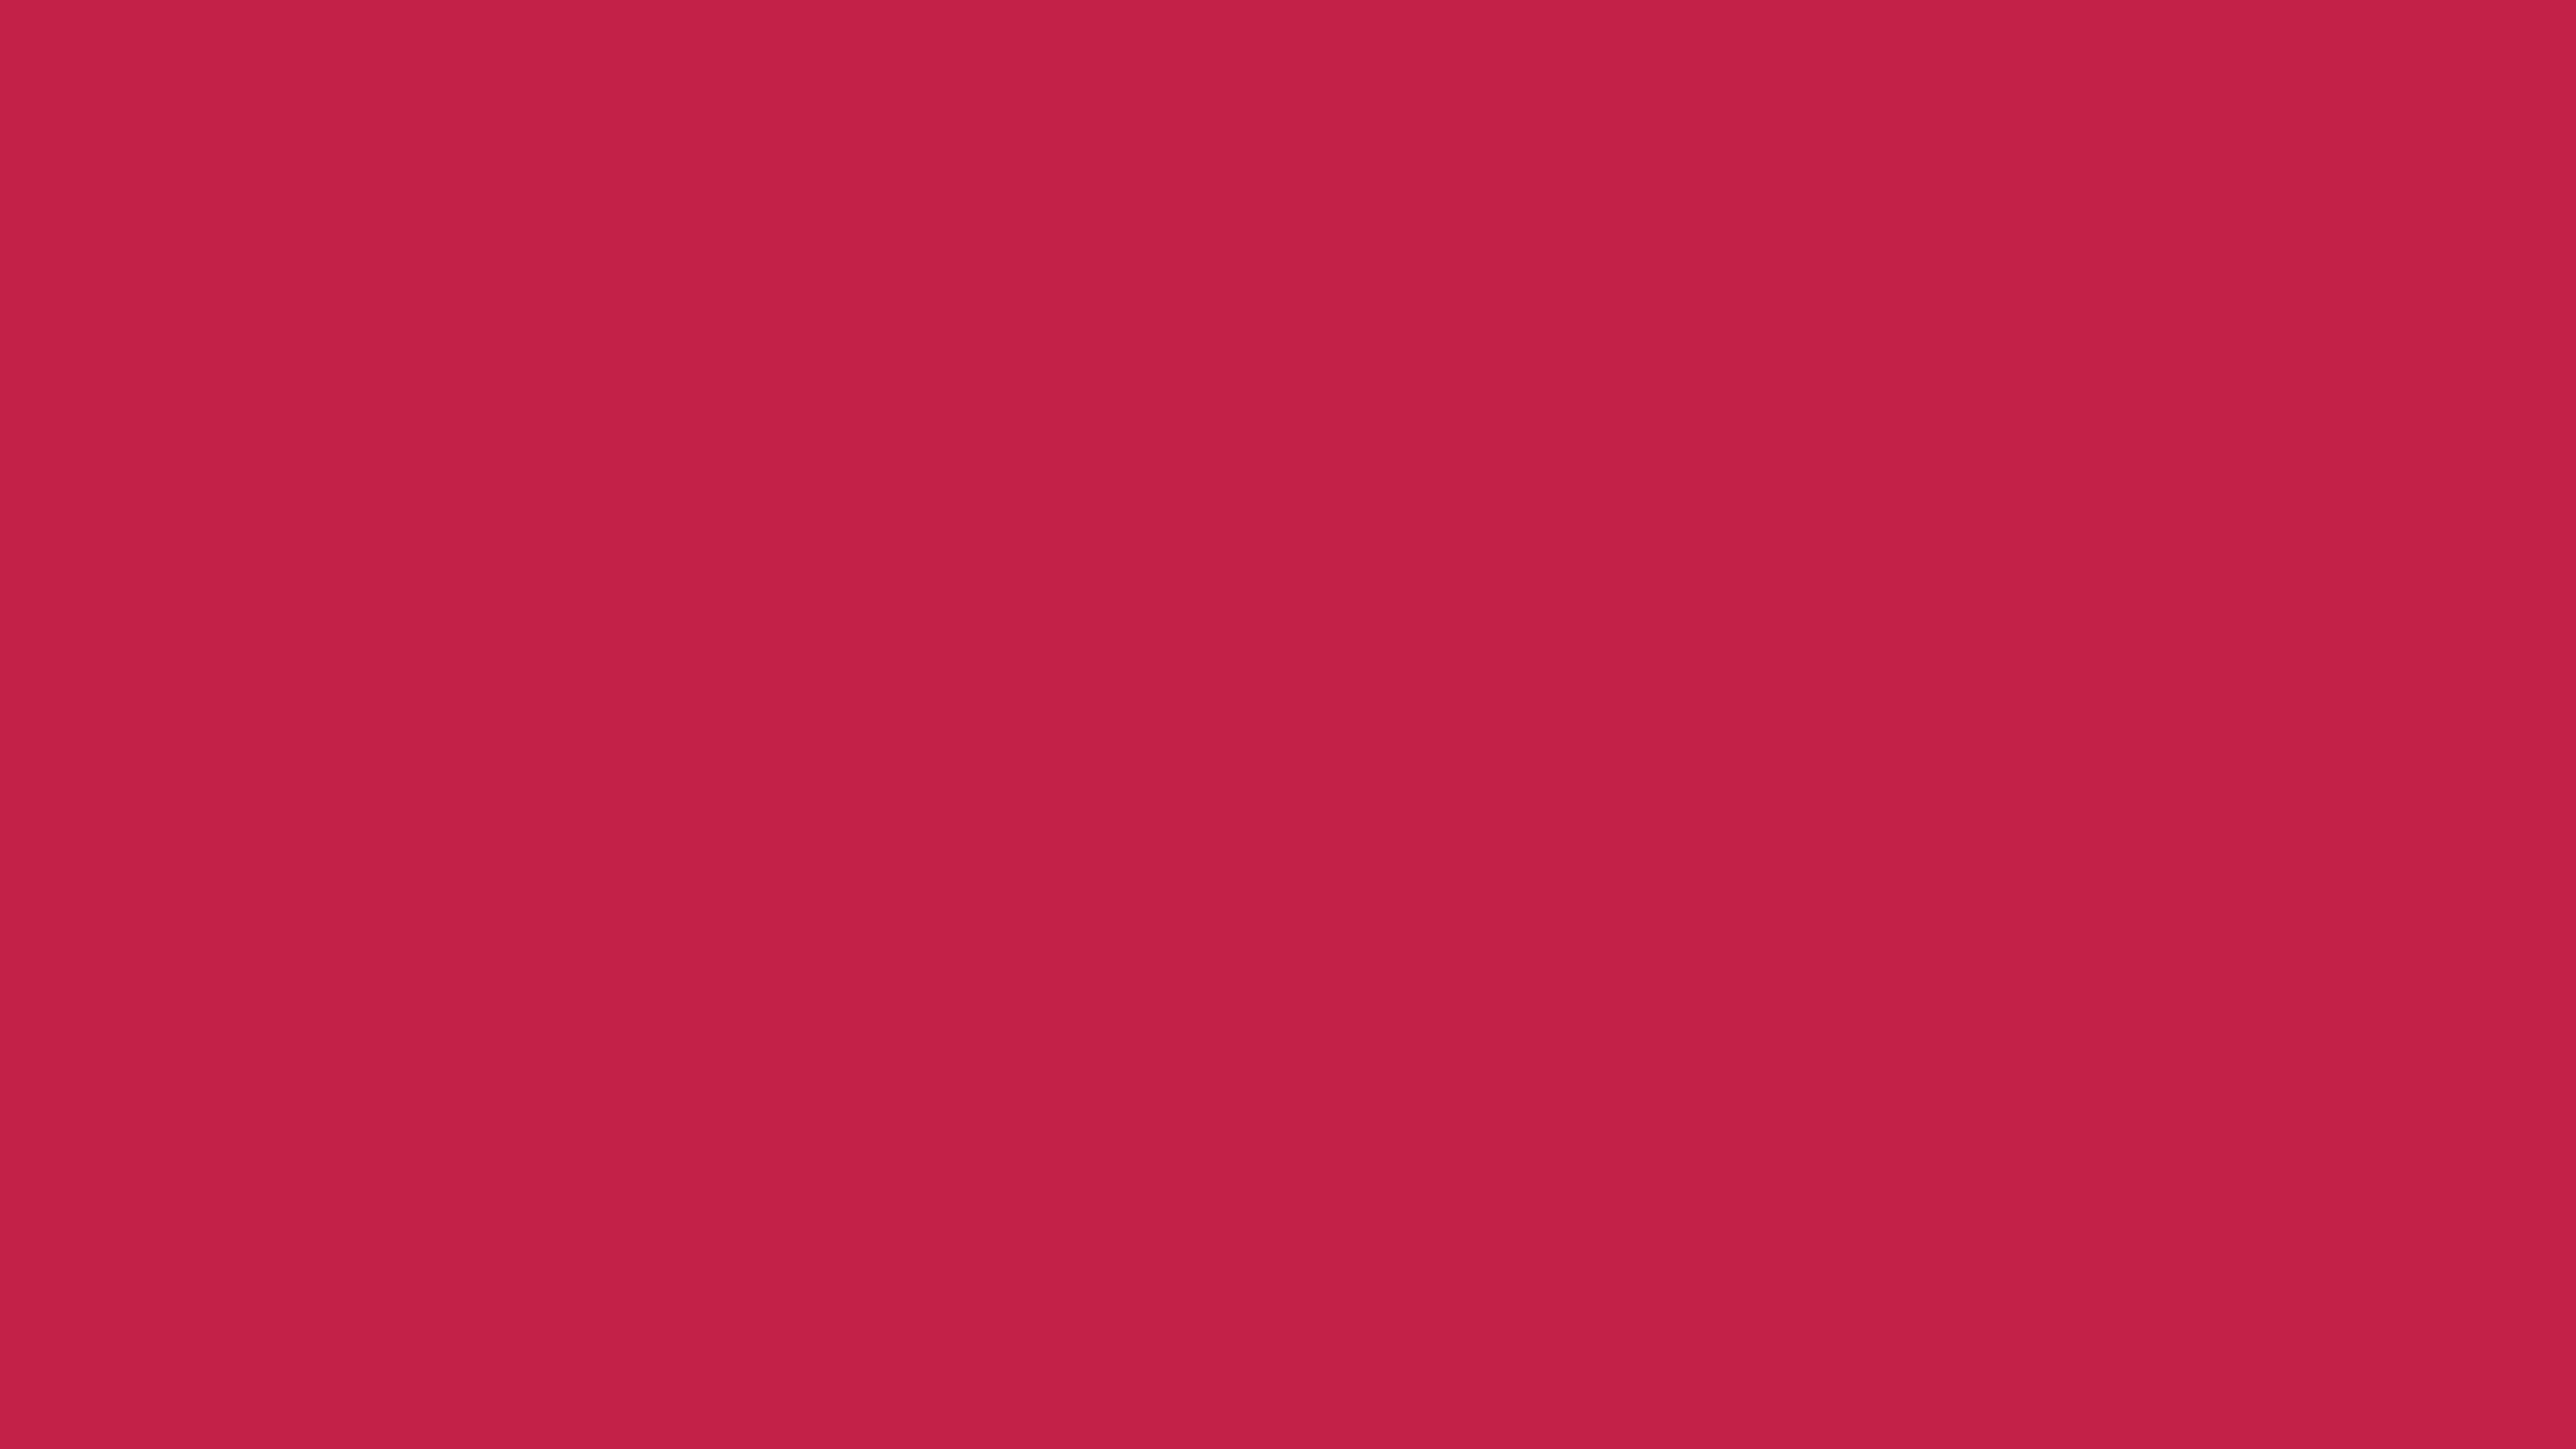 4096x2304 Bright Maroon Solid Color Background